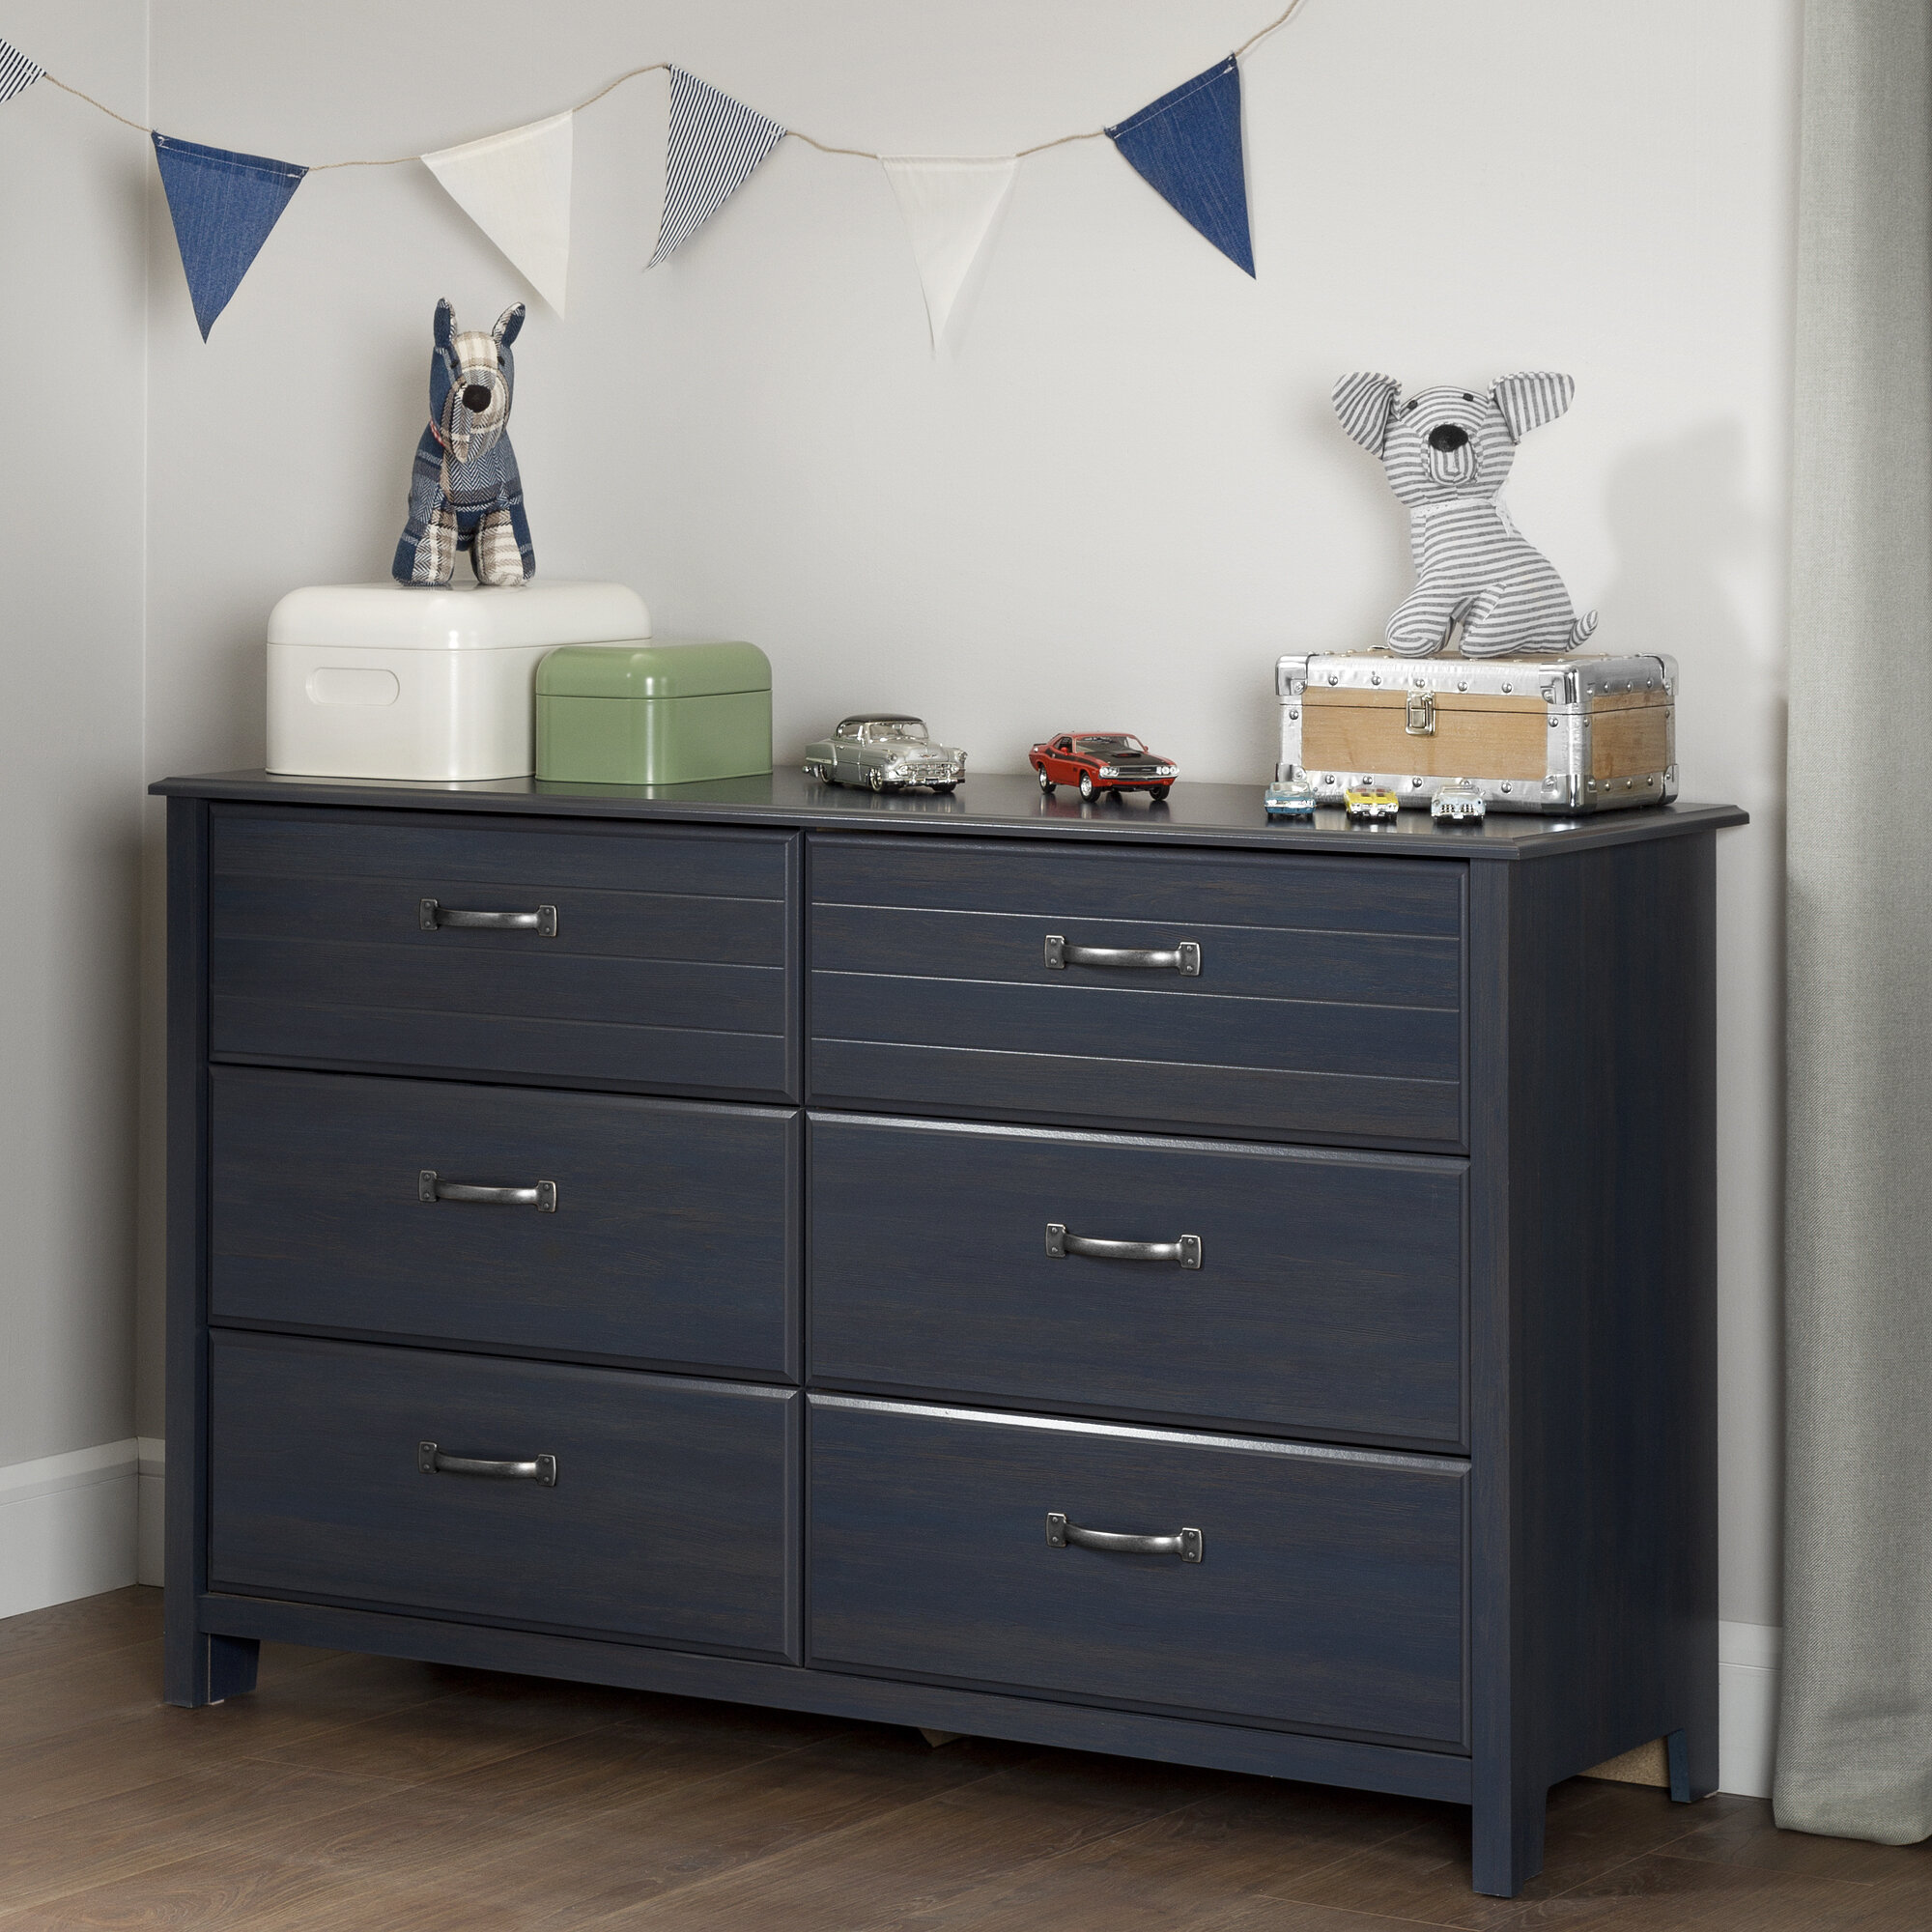 dresser by mirror drawer pdx inspirations with baby kids davinci kalani wayfair double lc wendy bellissimo reviews